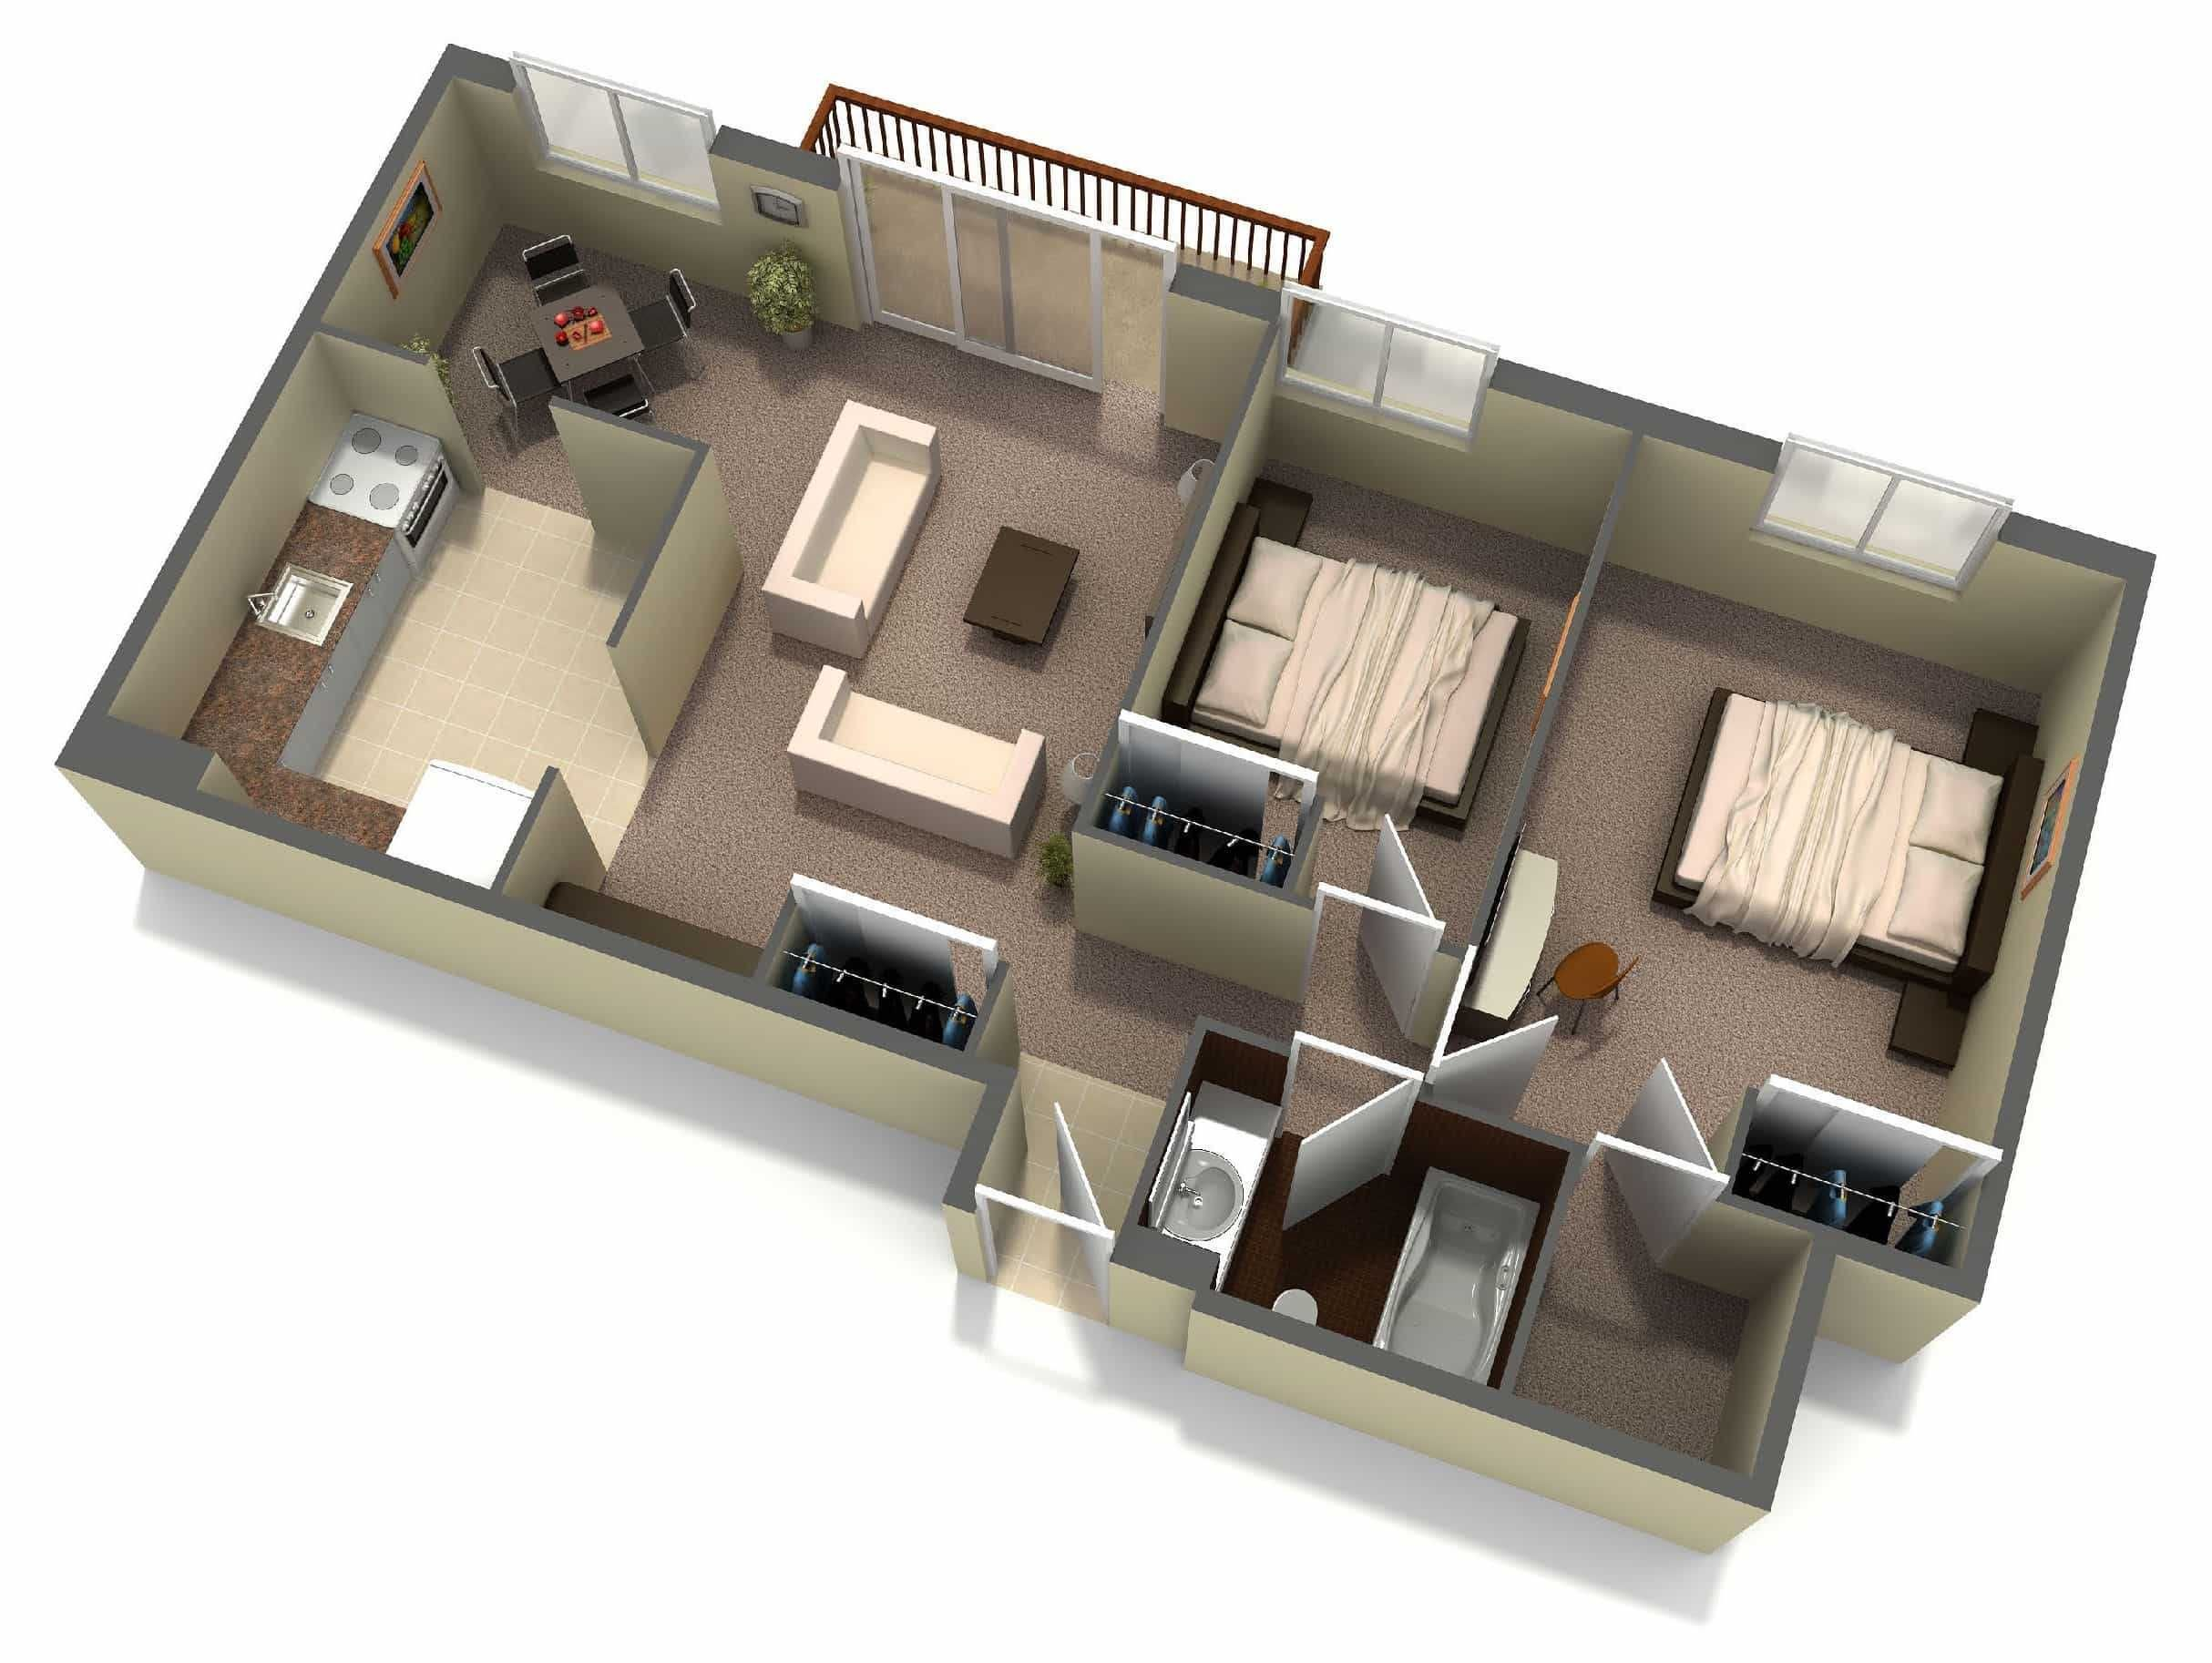 Small House Plans Under 700 Sq Ft in 2020 (With images